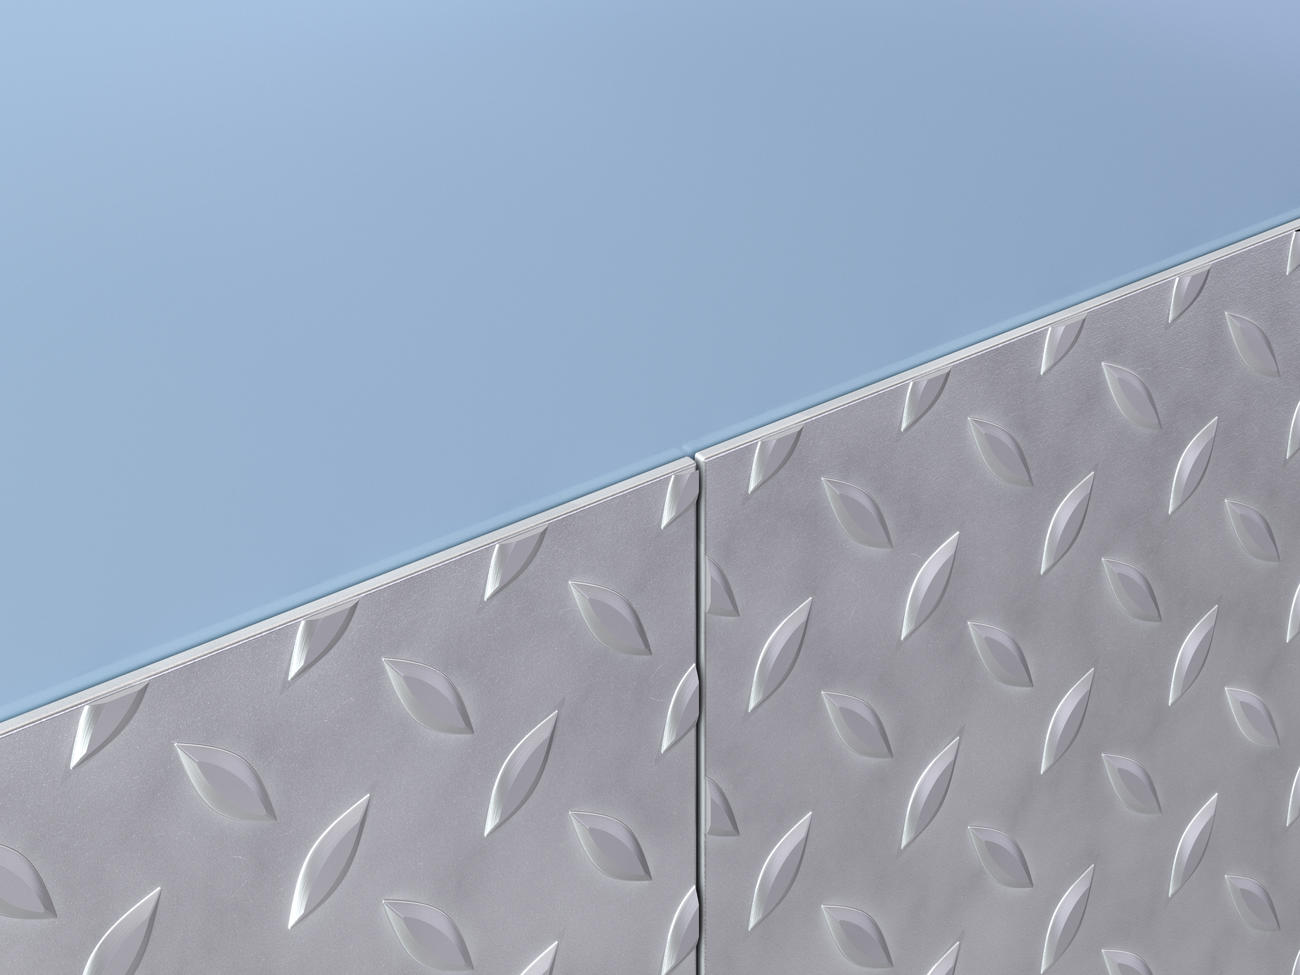 WPSD-12 Stainless Steel Diamond Plate Wall Covering